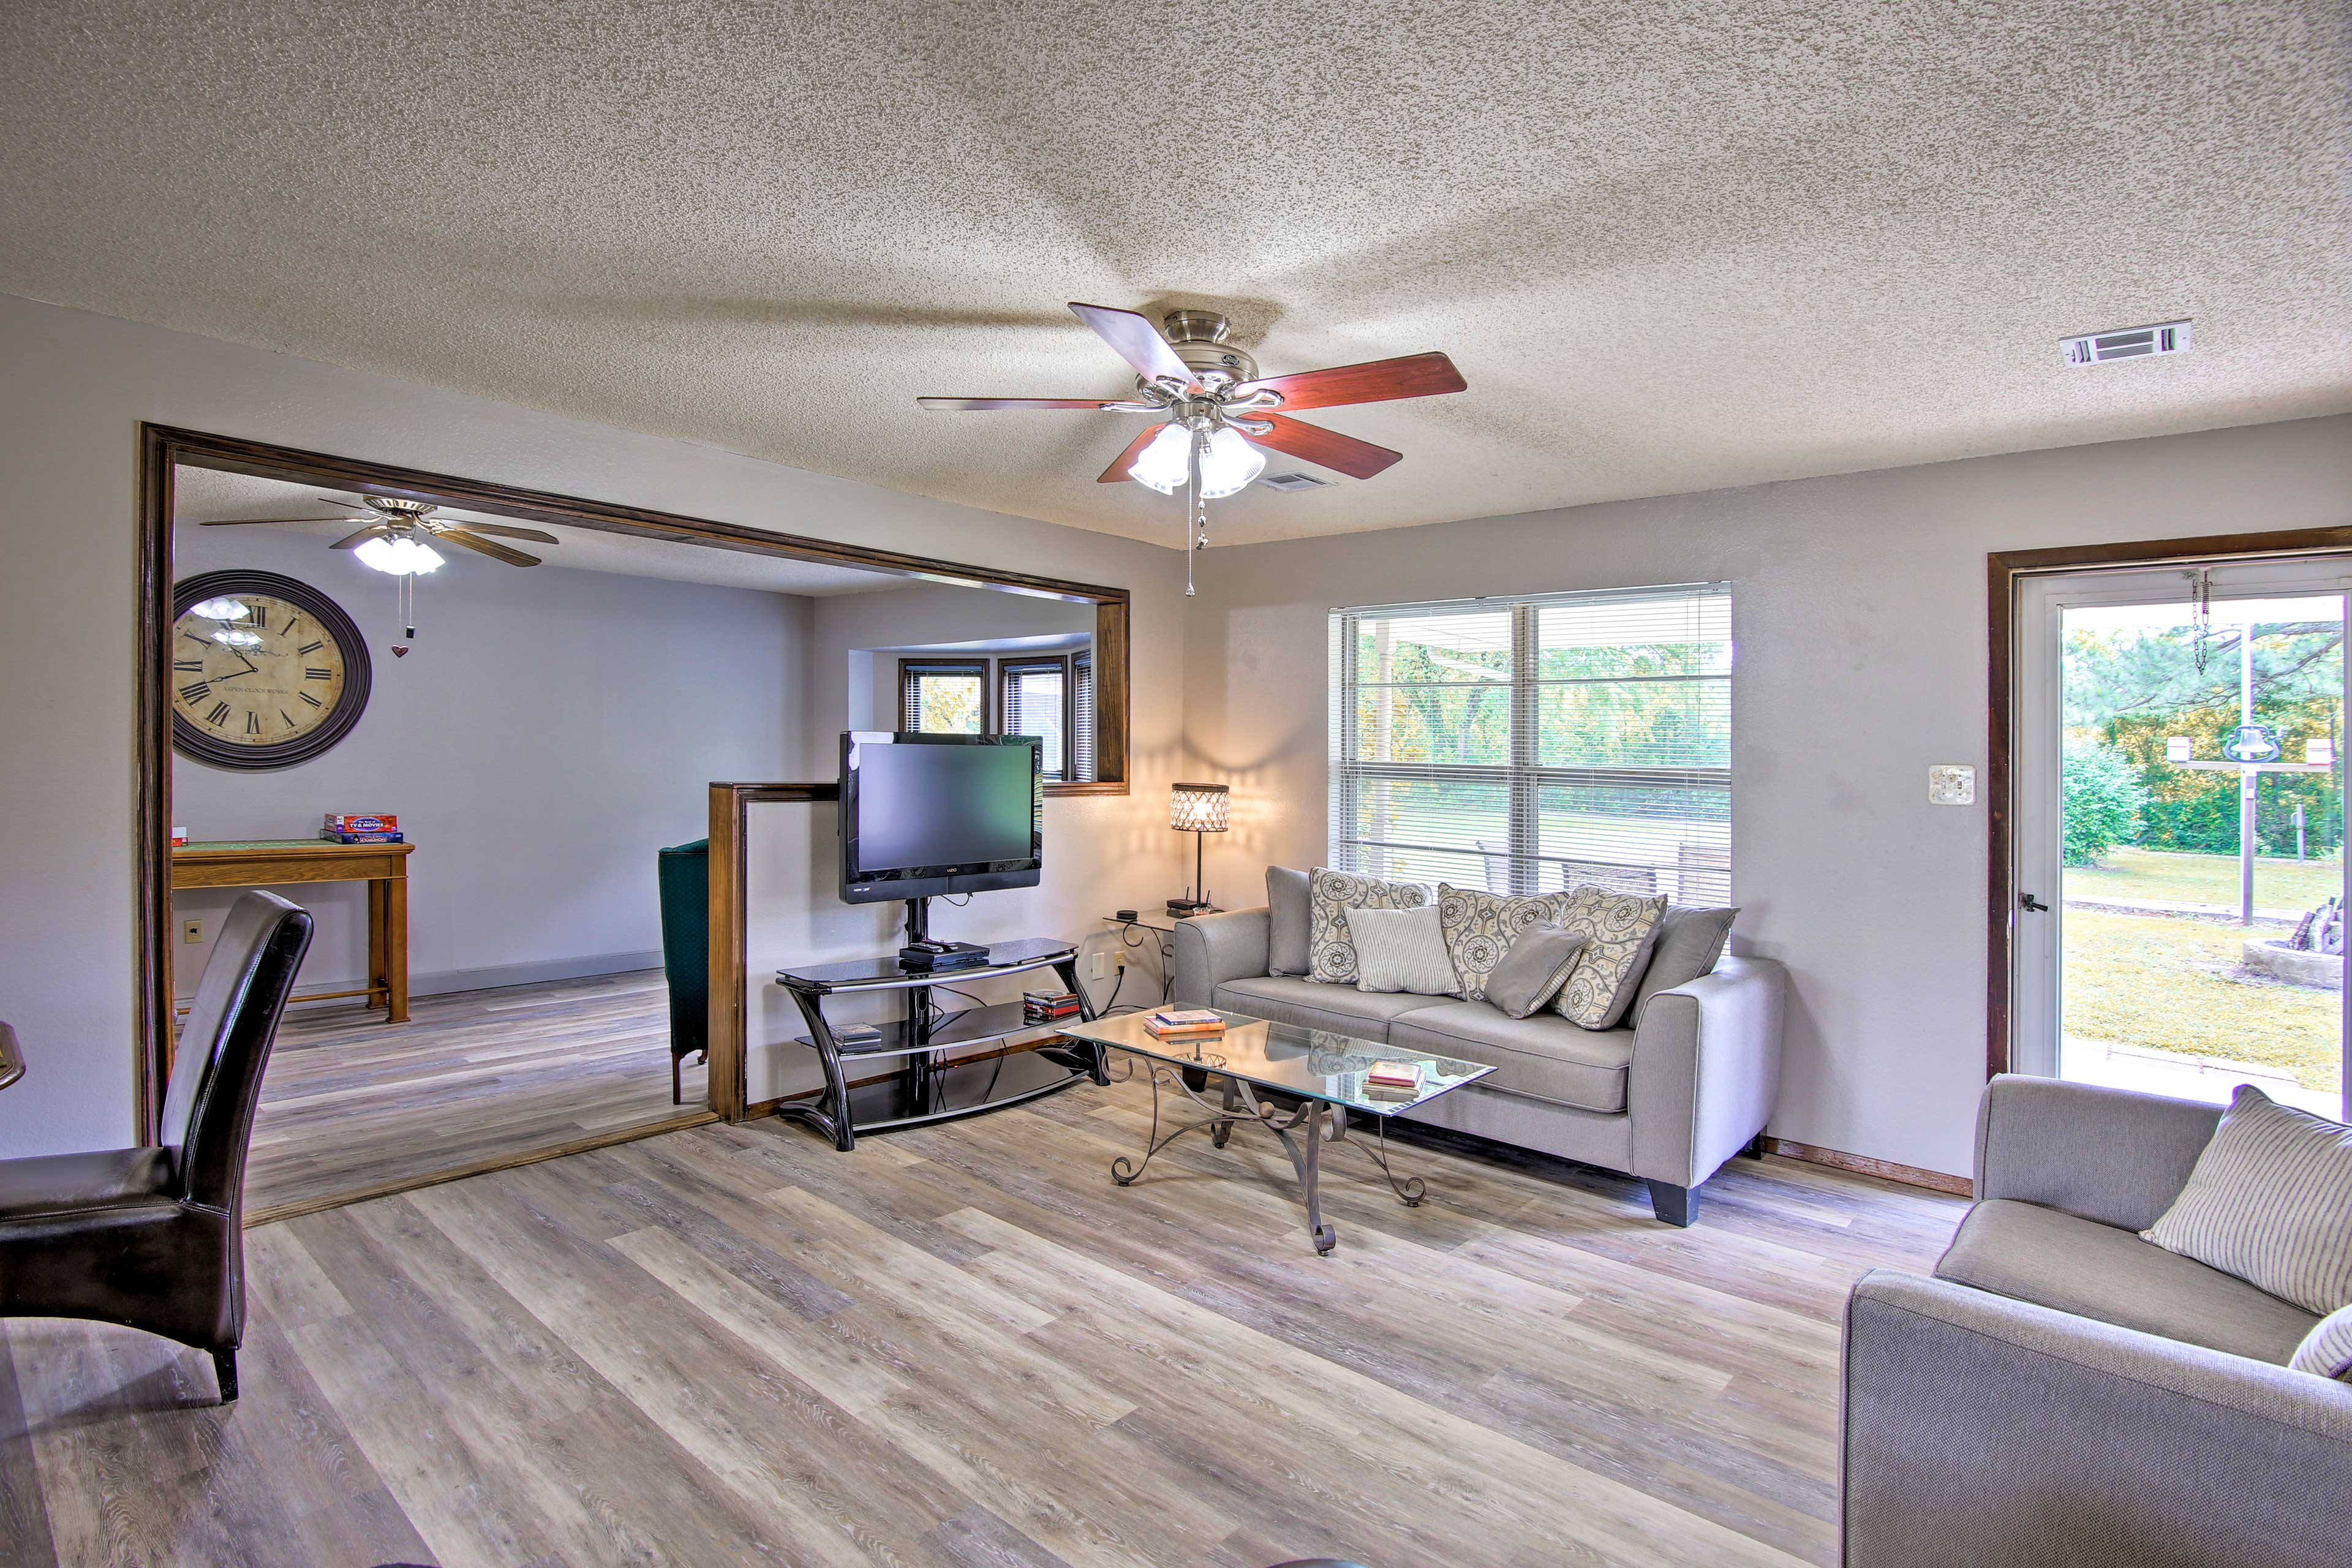 The bright modern interior has comfortable furnishings and sleeps 8 guests.